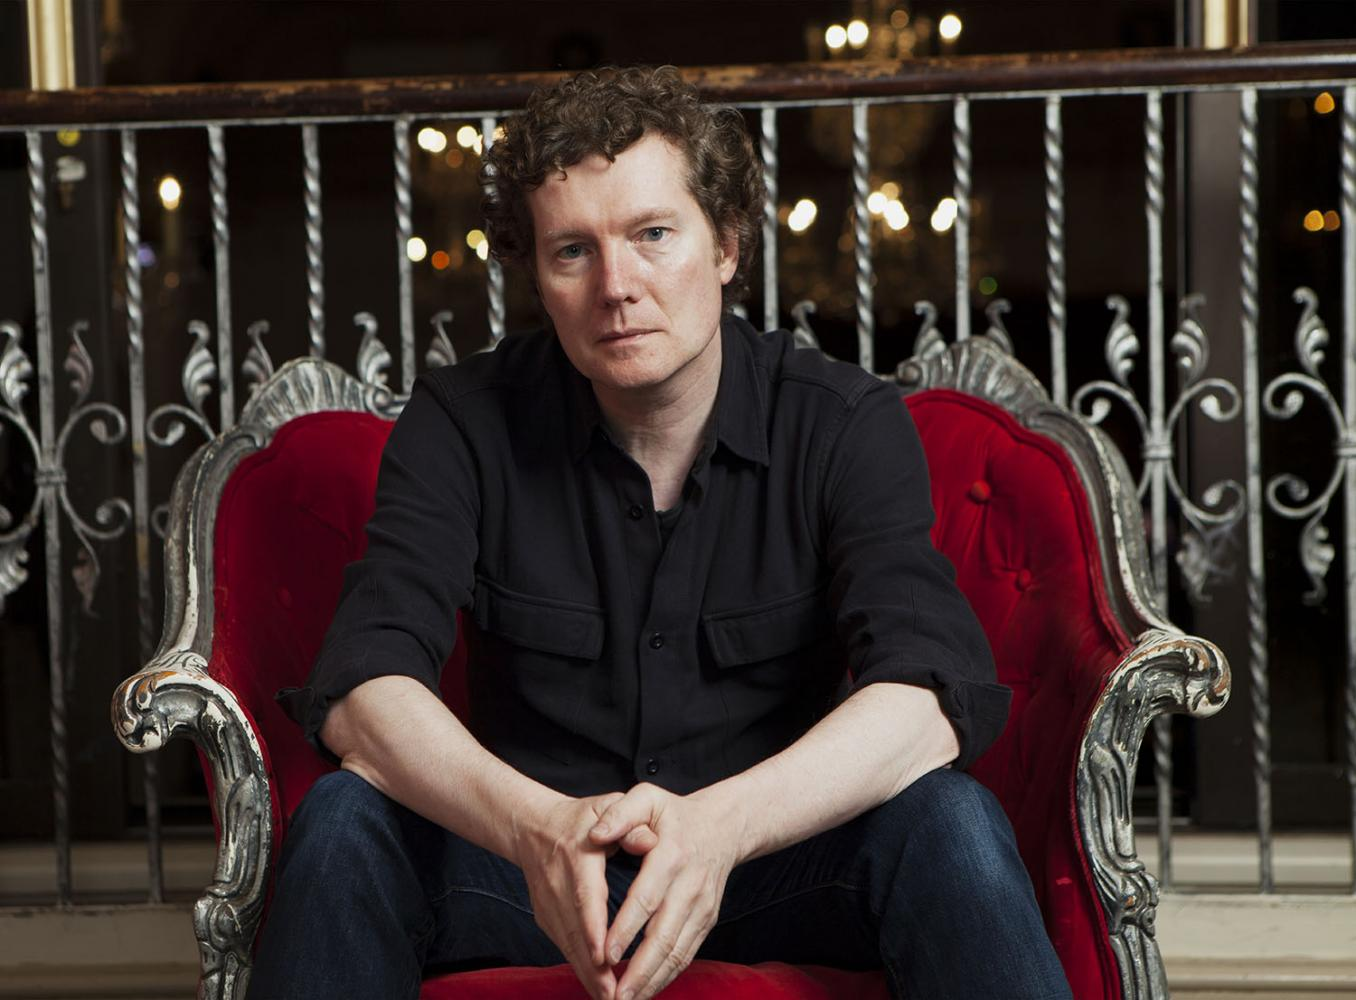 Tim Bowness Publicity Stills